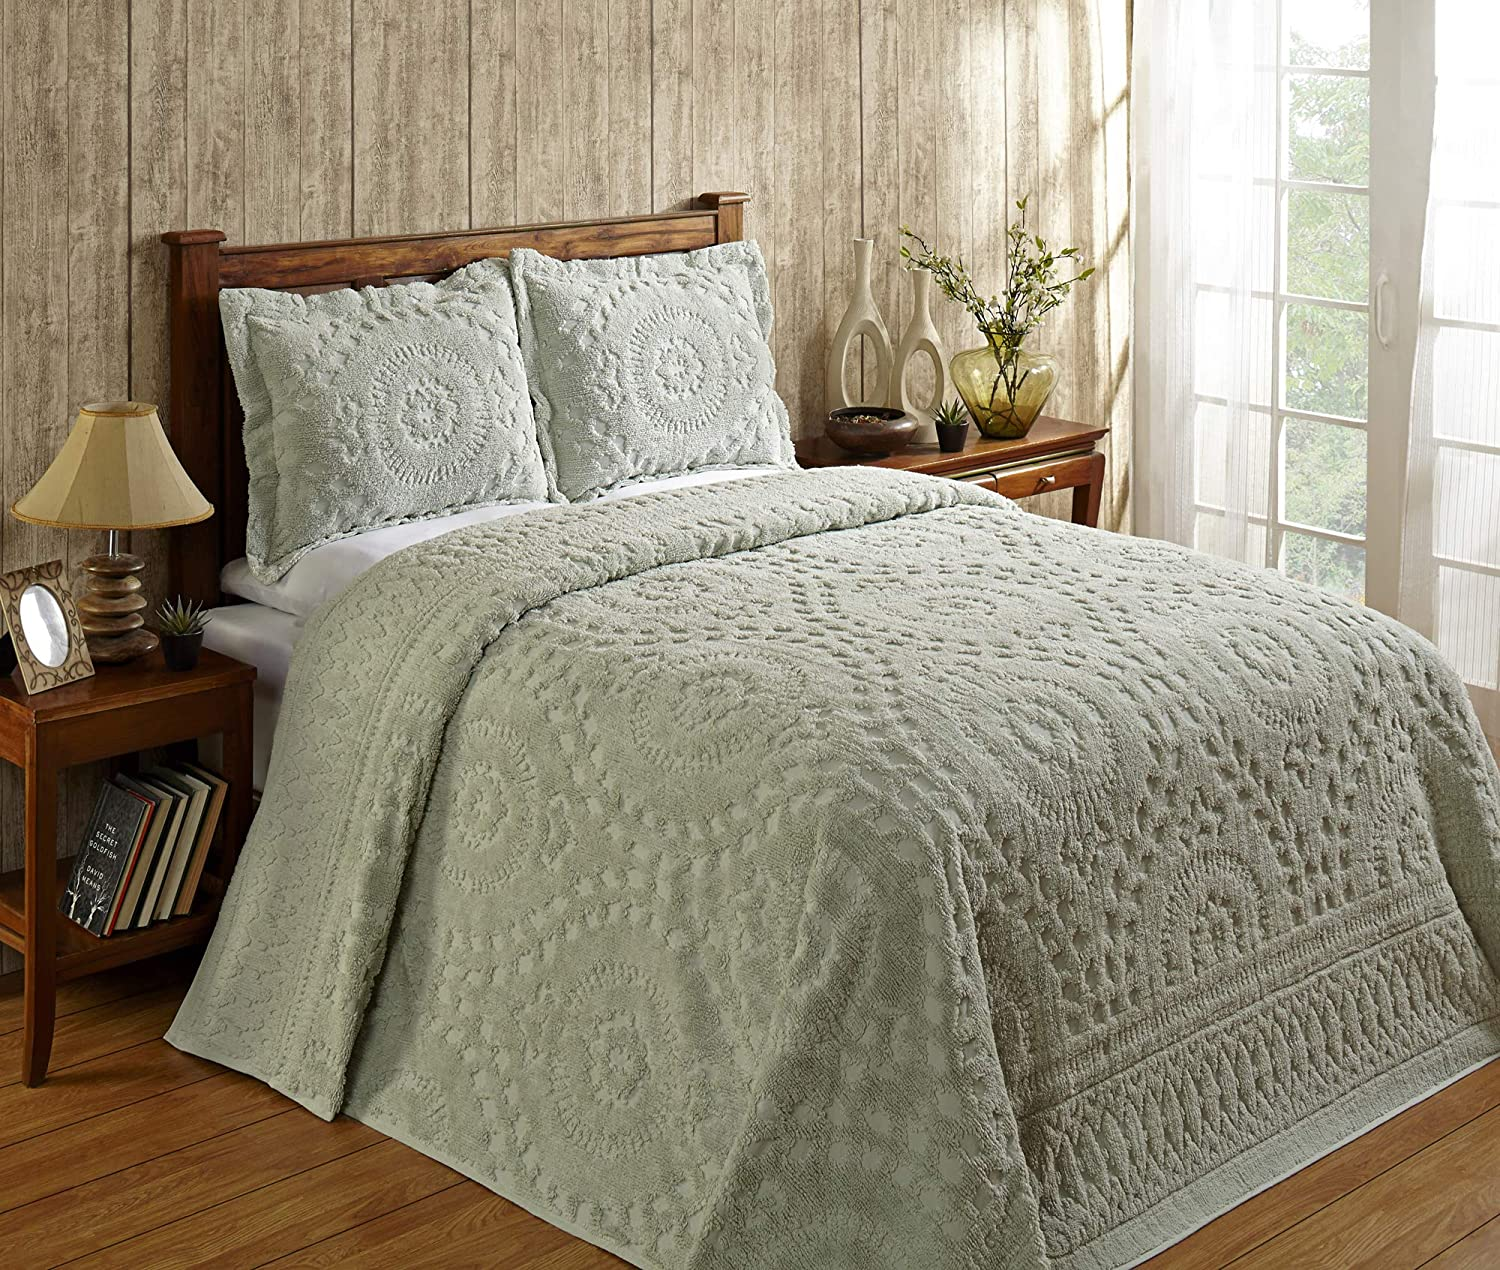 Better Trends Rio Collection in Floral Design 100% Cotton Tufted Chenille, Queen Bedspread, Sage